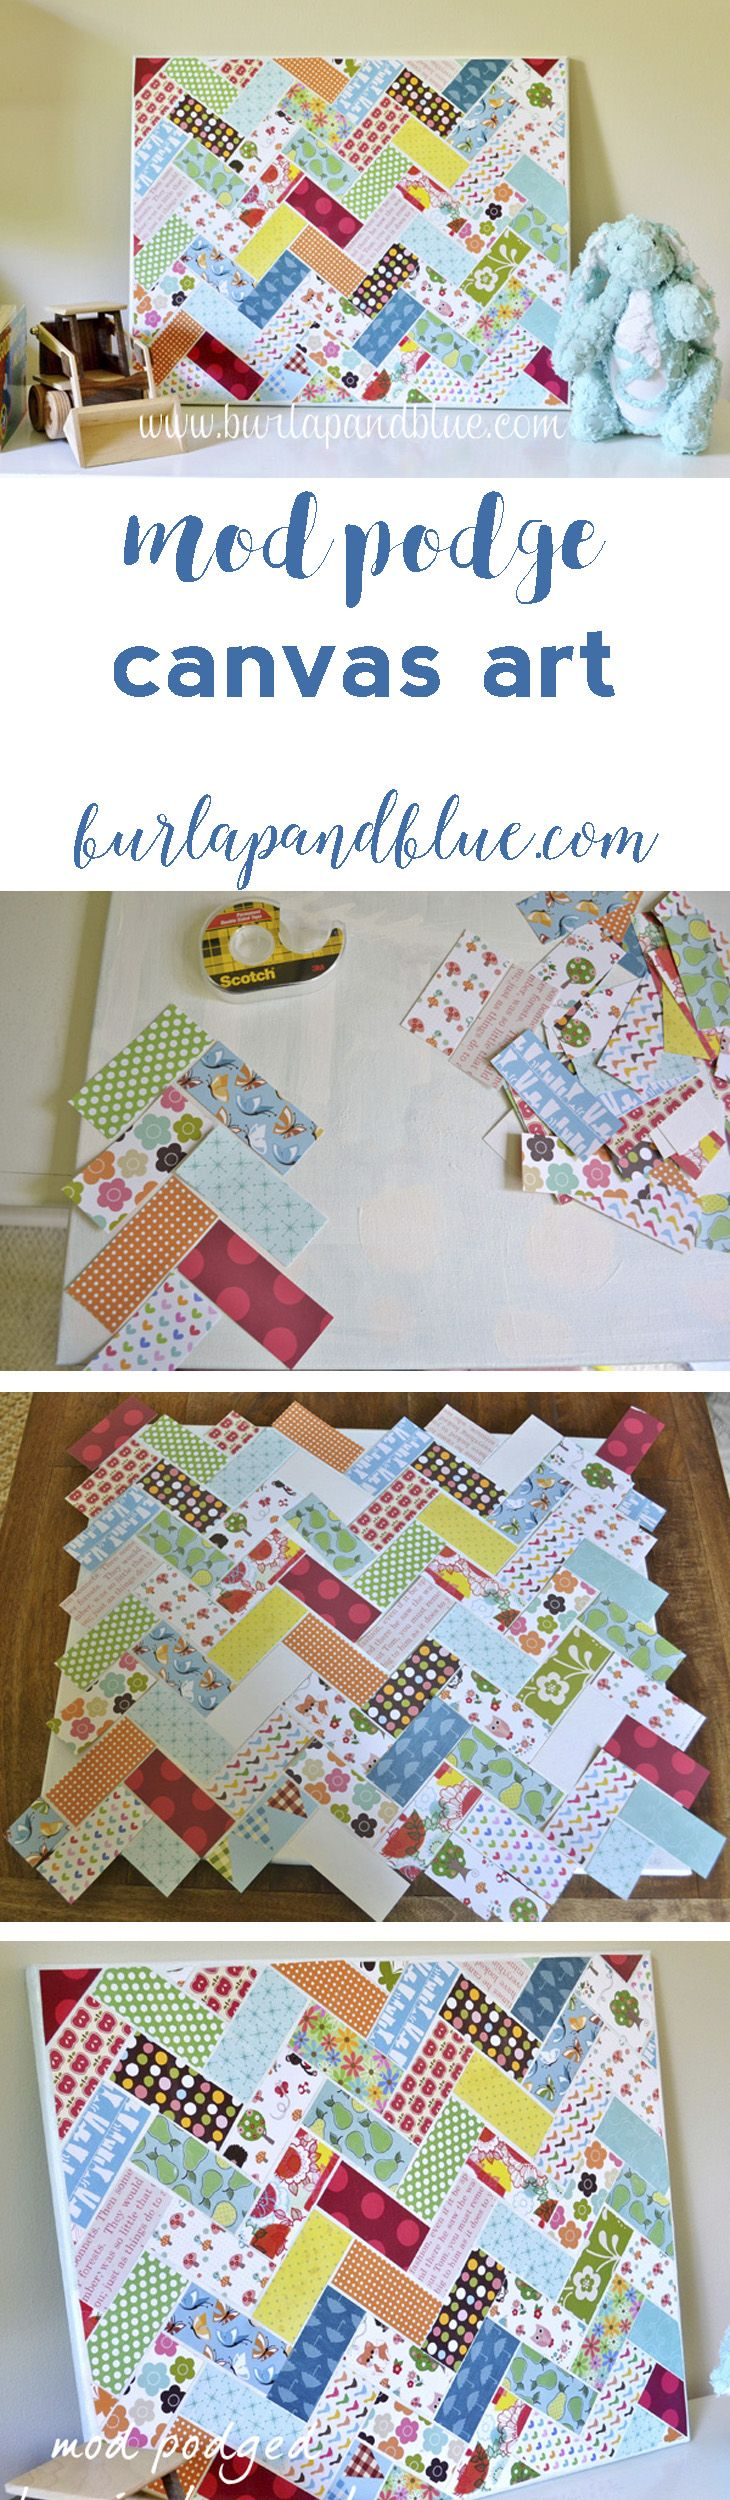 How to scrapbook paper on canvas